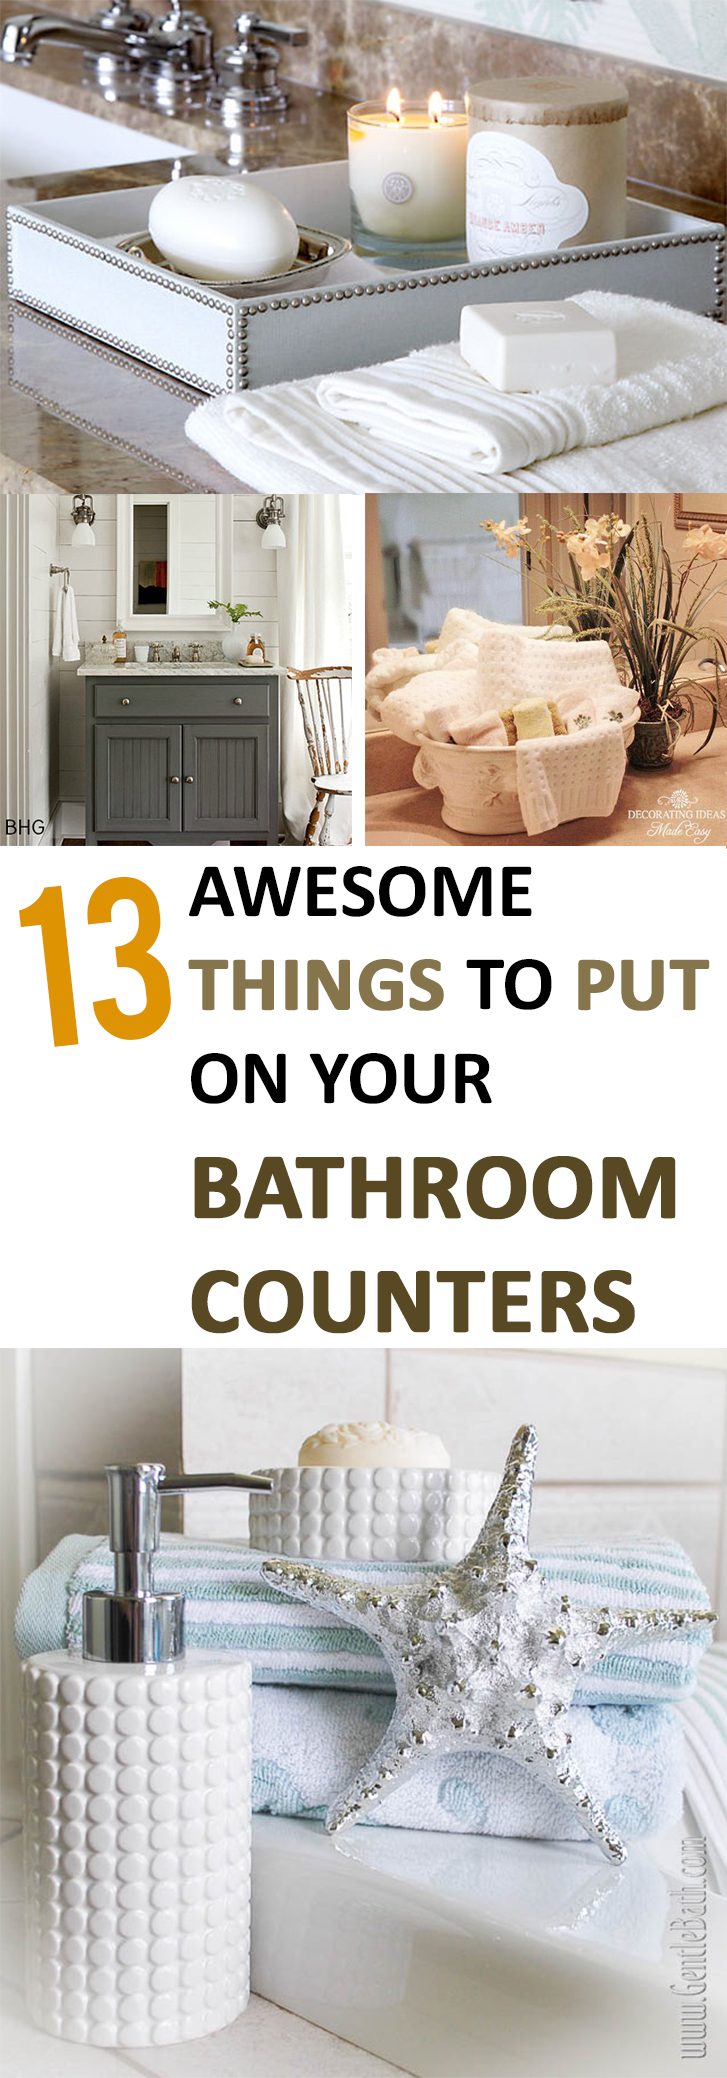 13 awesome things to put on your bathroom counters - Bathroom Counter Decorating Ideas